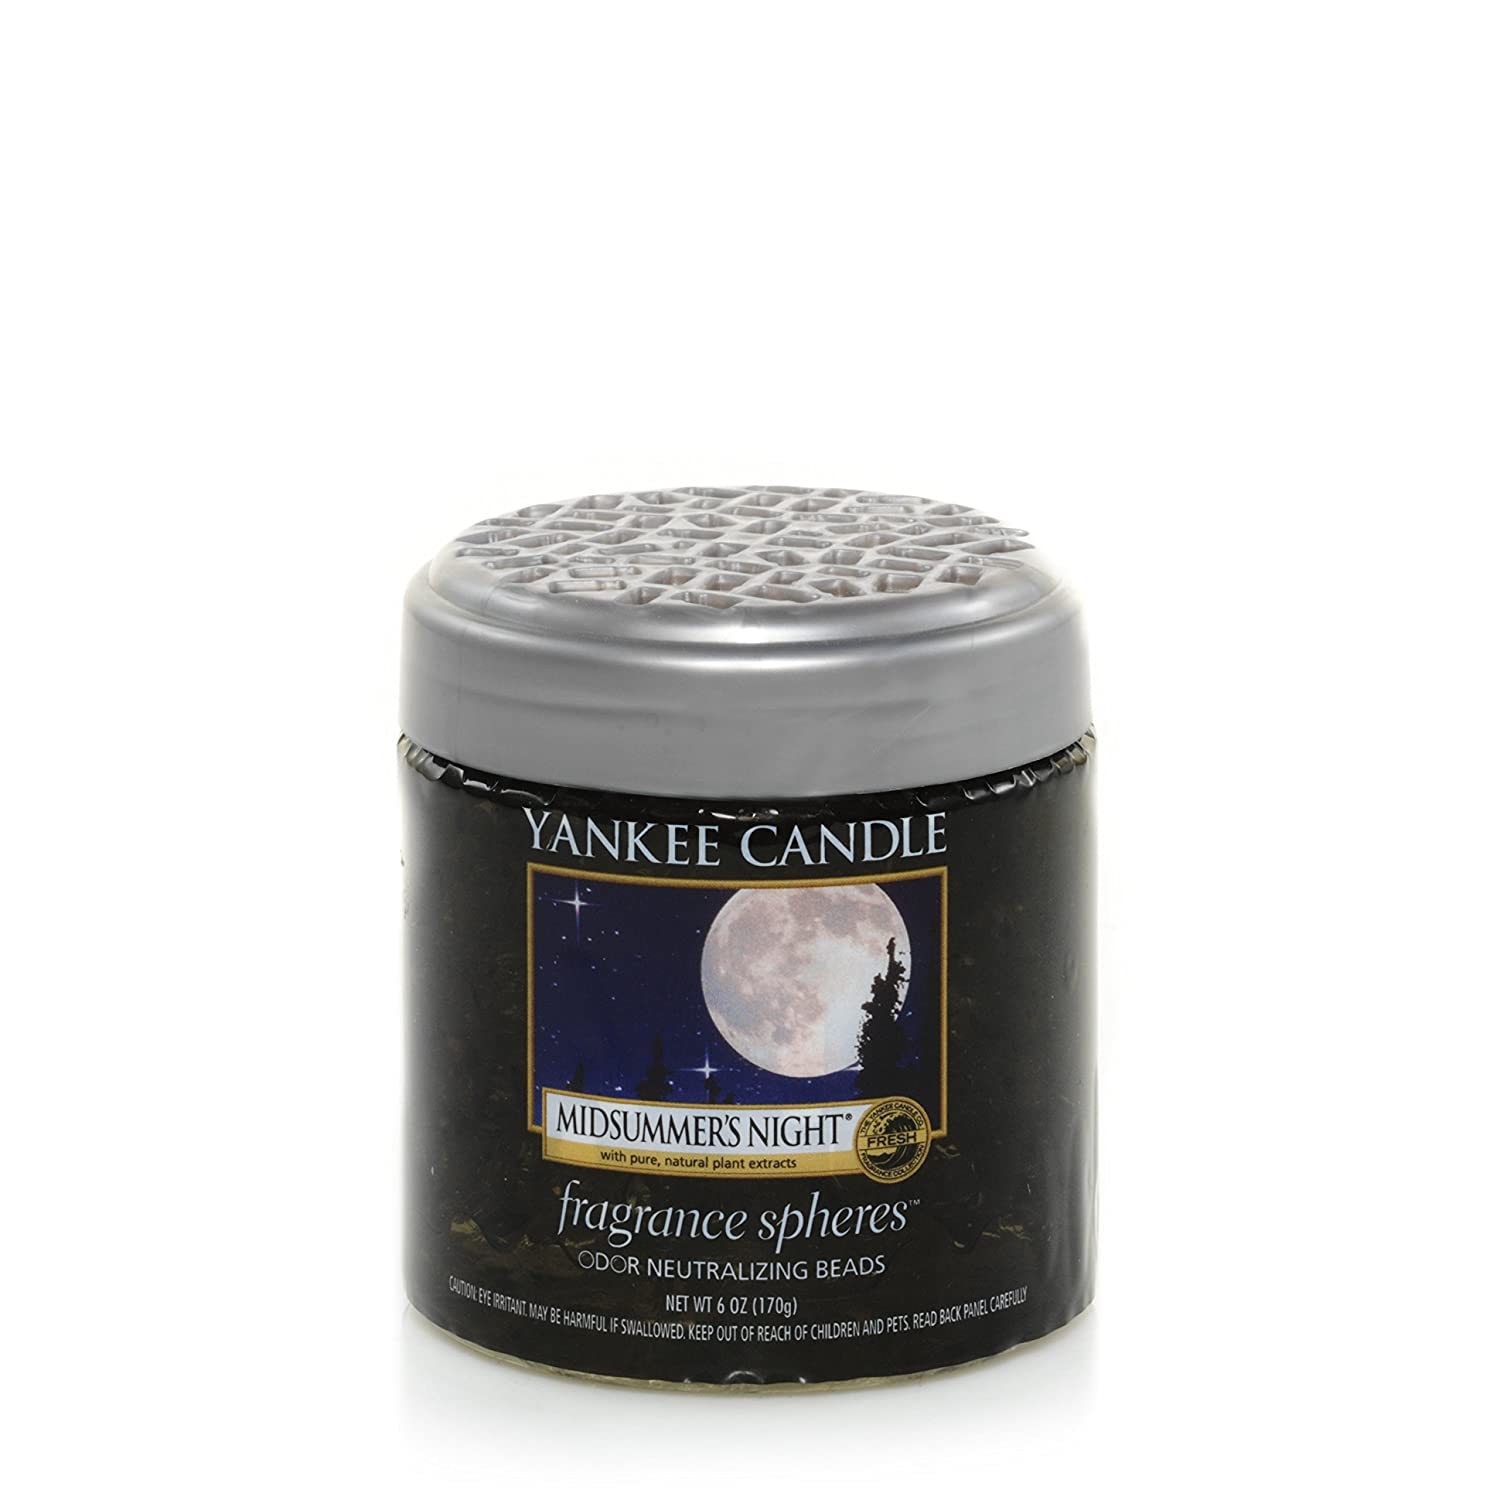 Yankee Candle Midsummers Night Fragrance Spheres Black Amazon